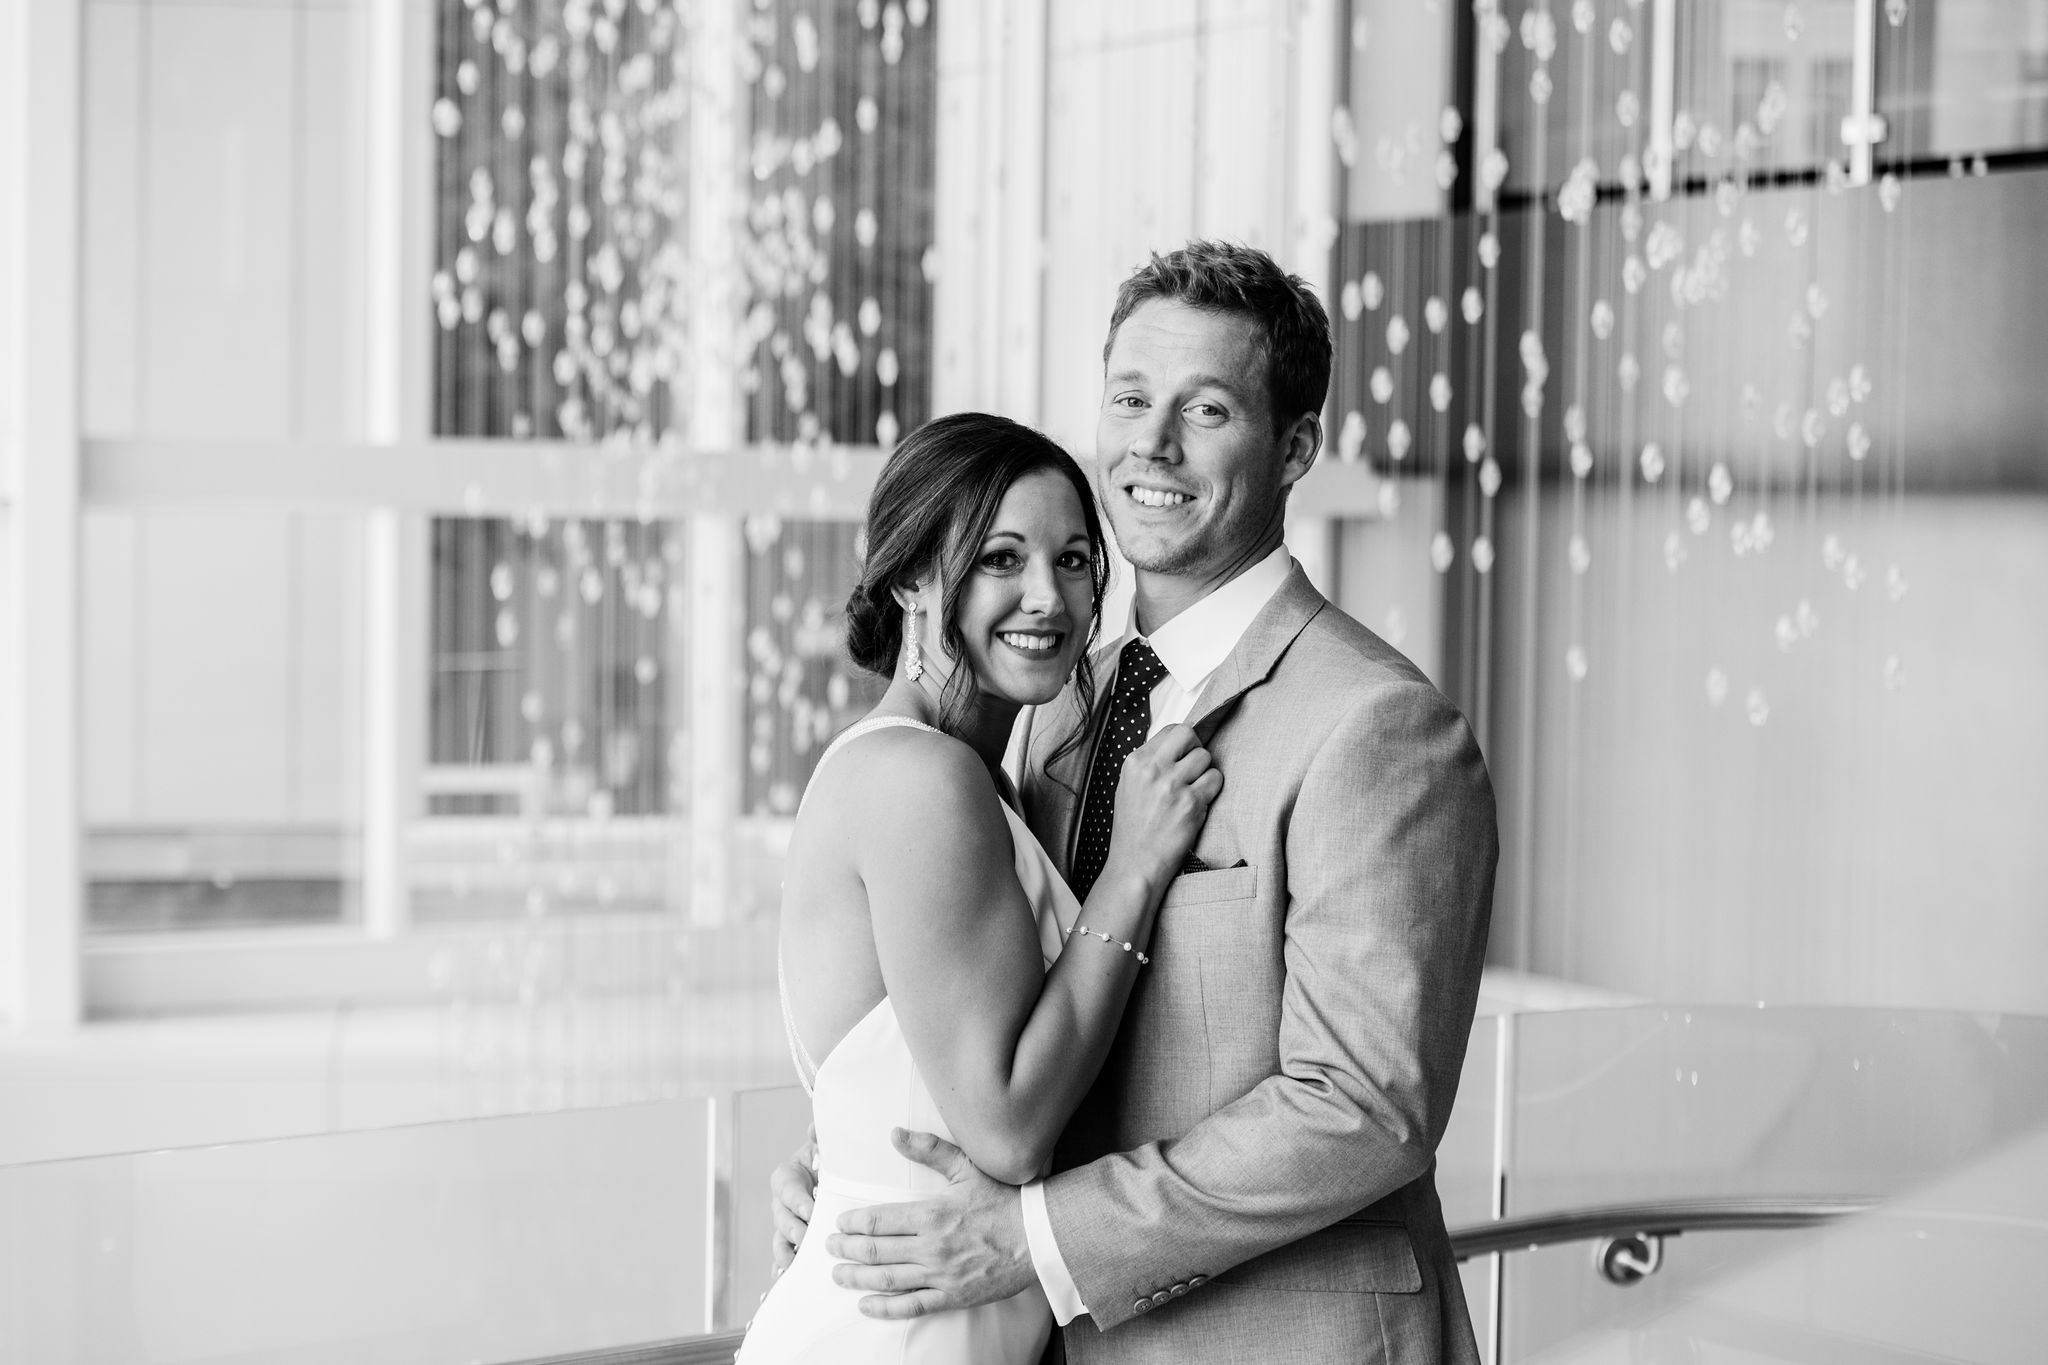 Bride and groom pose among hanging lights during their fall wedding captured by Sunshower Photography